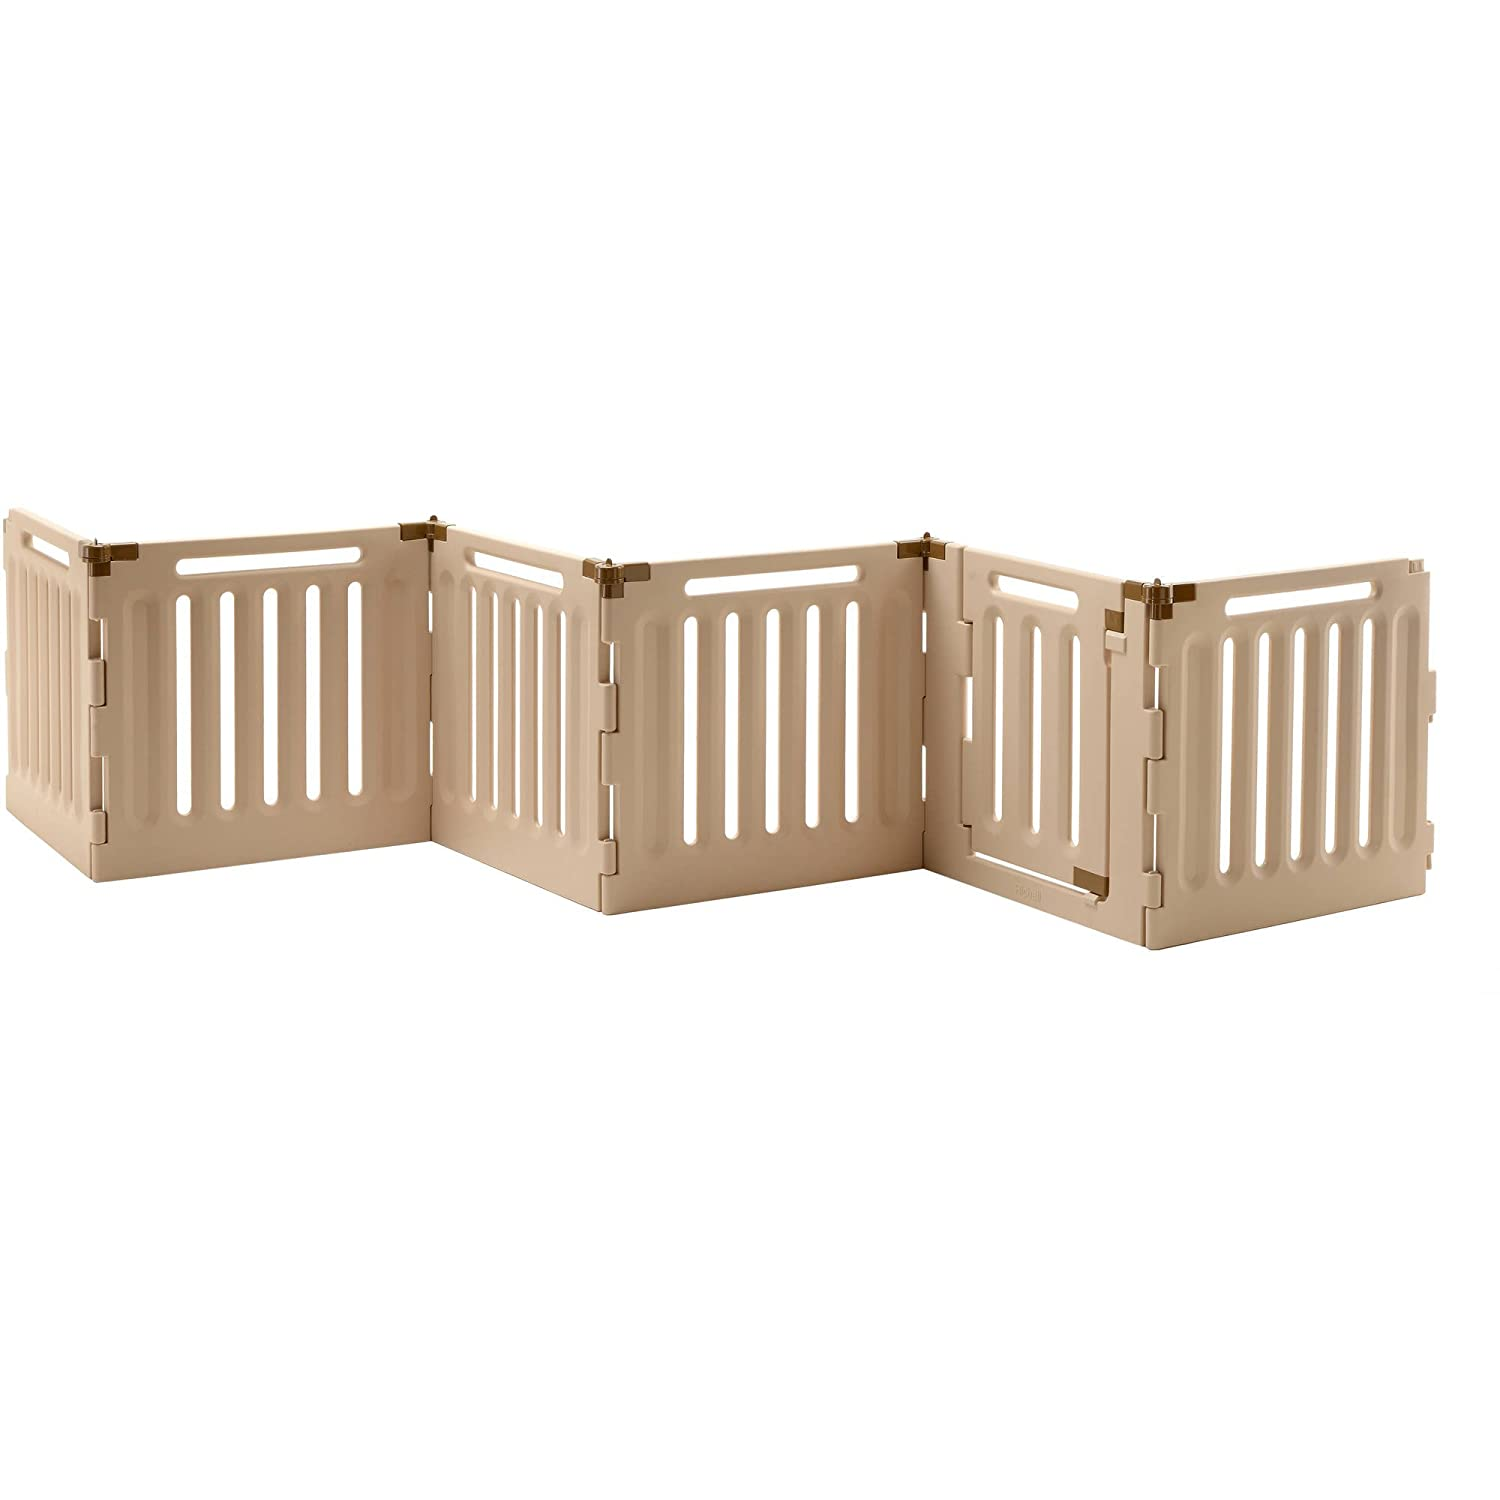 Richell 94906 Plastic Pet Playpens Kennels and Gates